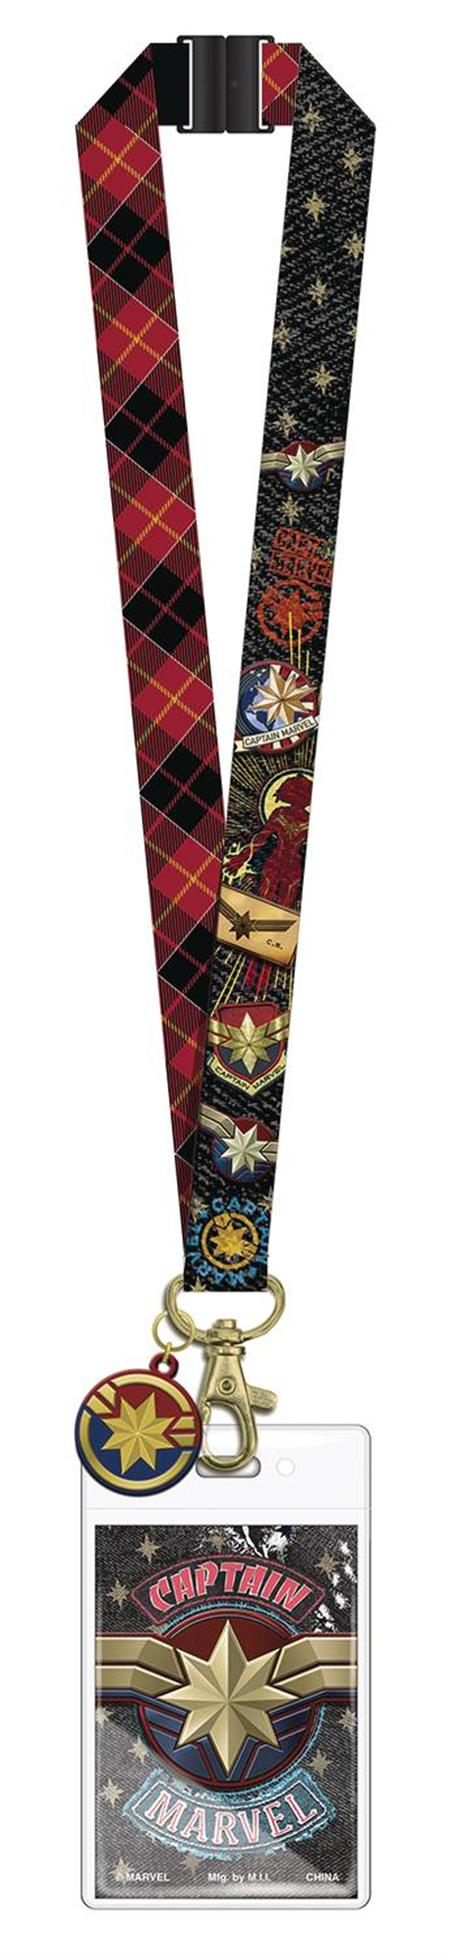 CAPTAIN MARVEL LANYARD WITH CHARM (C: 1-1-2)